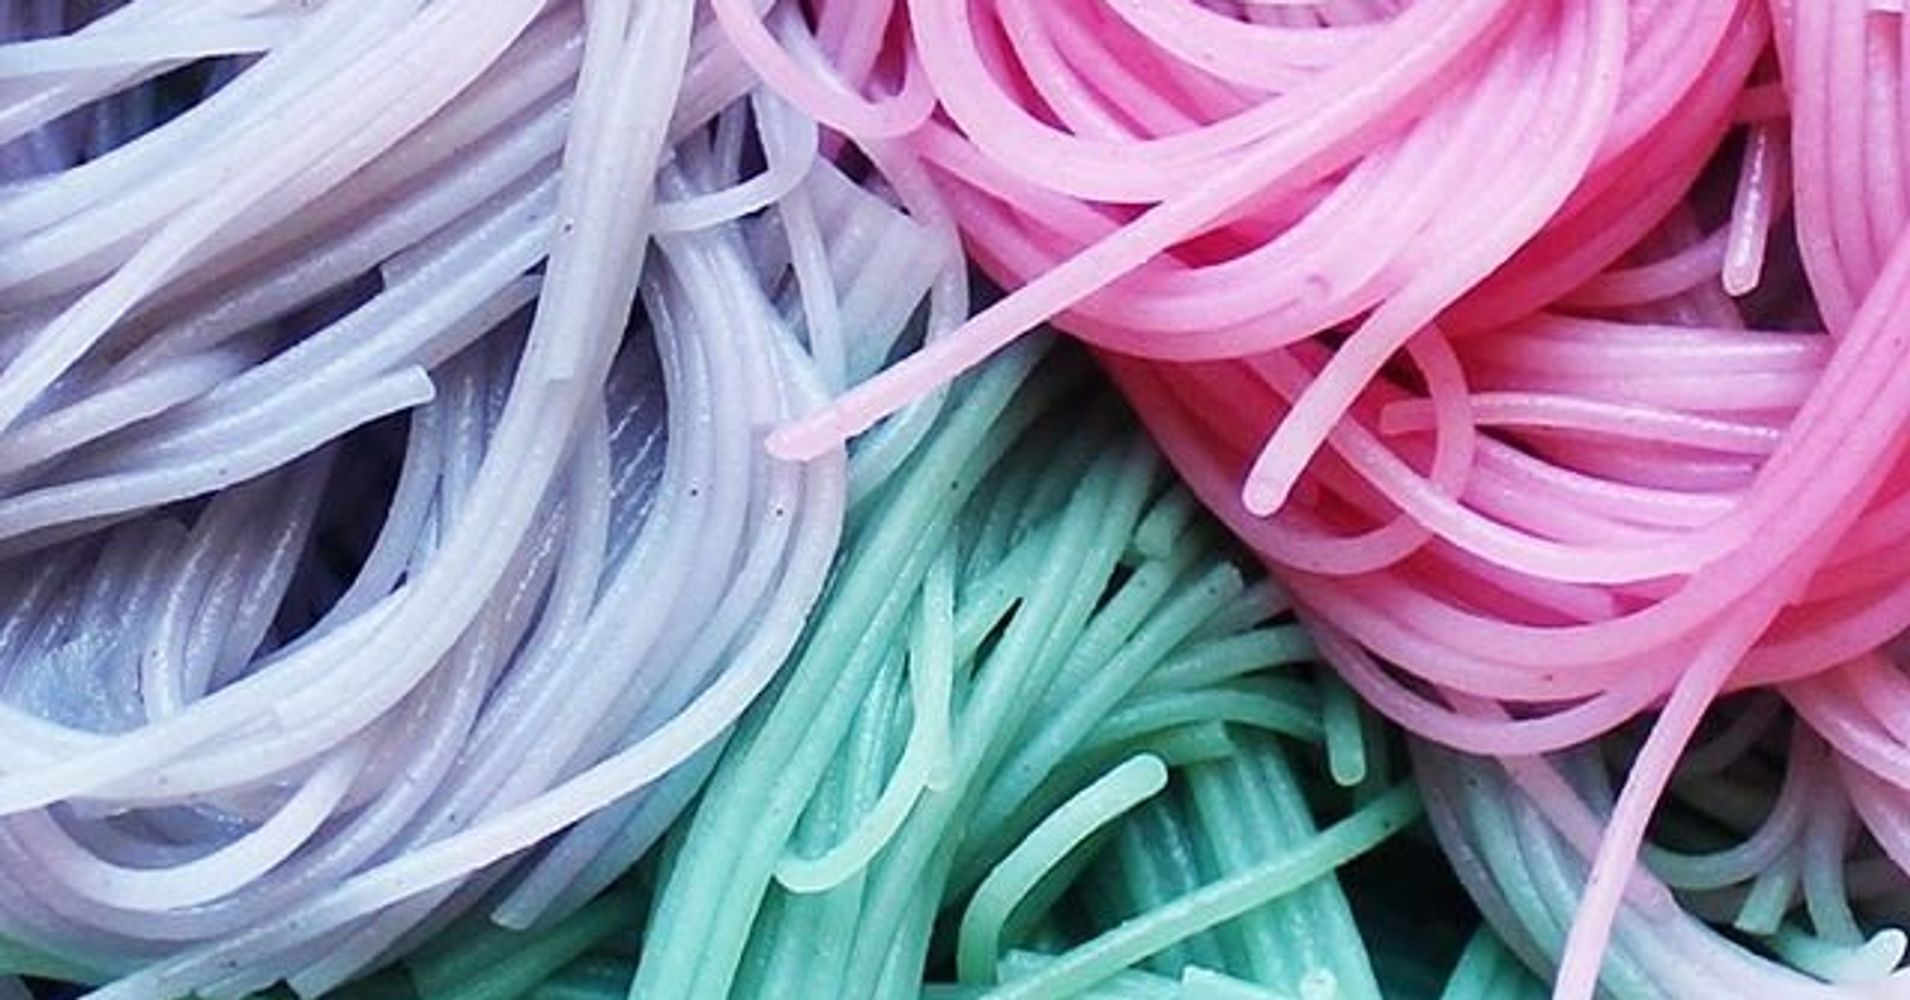 unicorn noodles are an all natural food trend you might actually